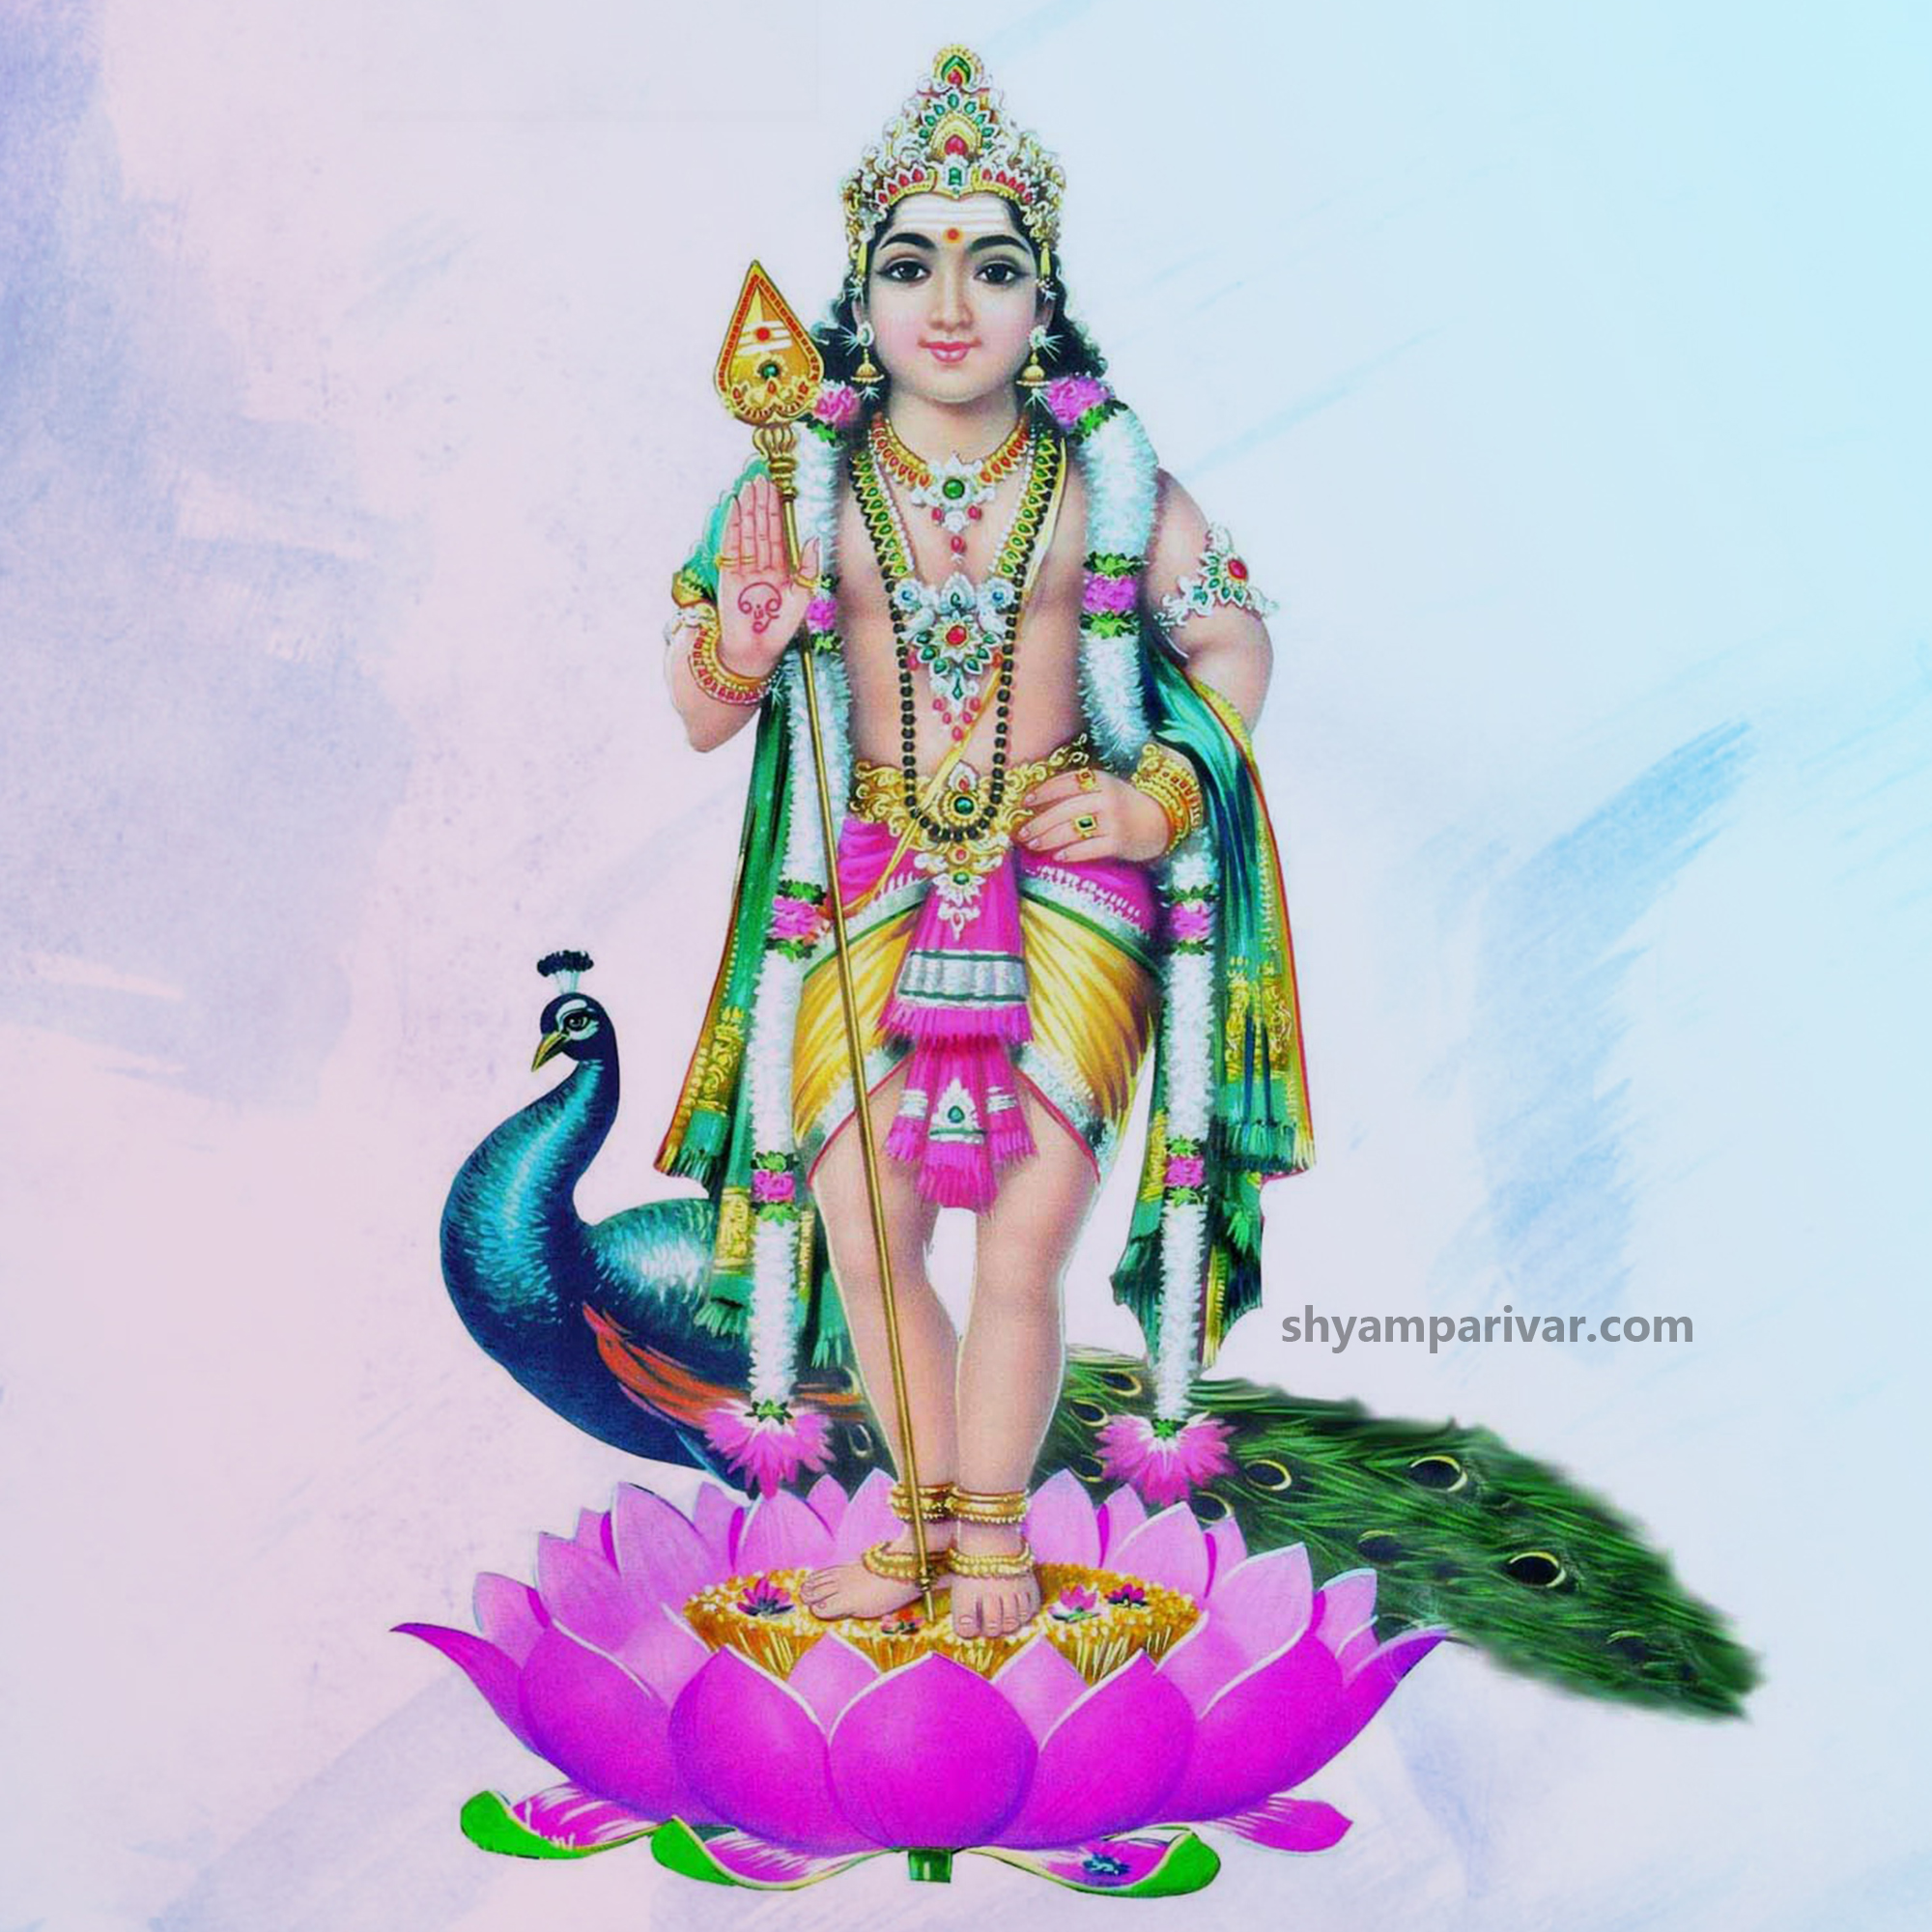 Lord Murugan Images Hd Free Donload